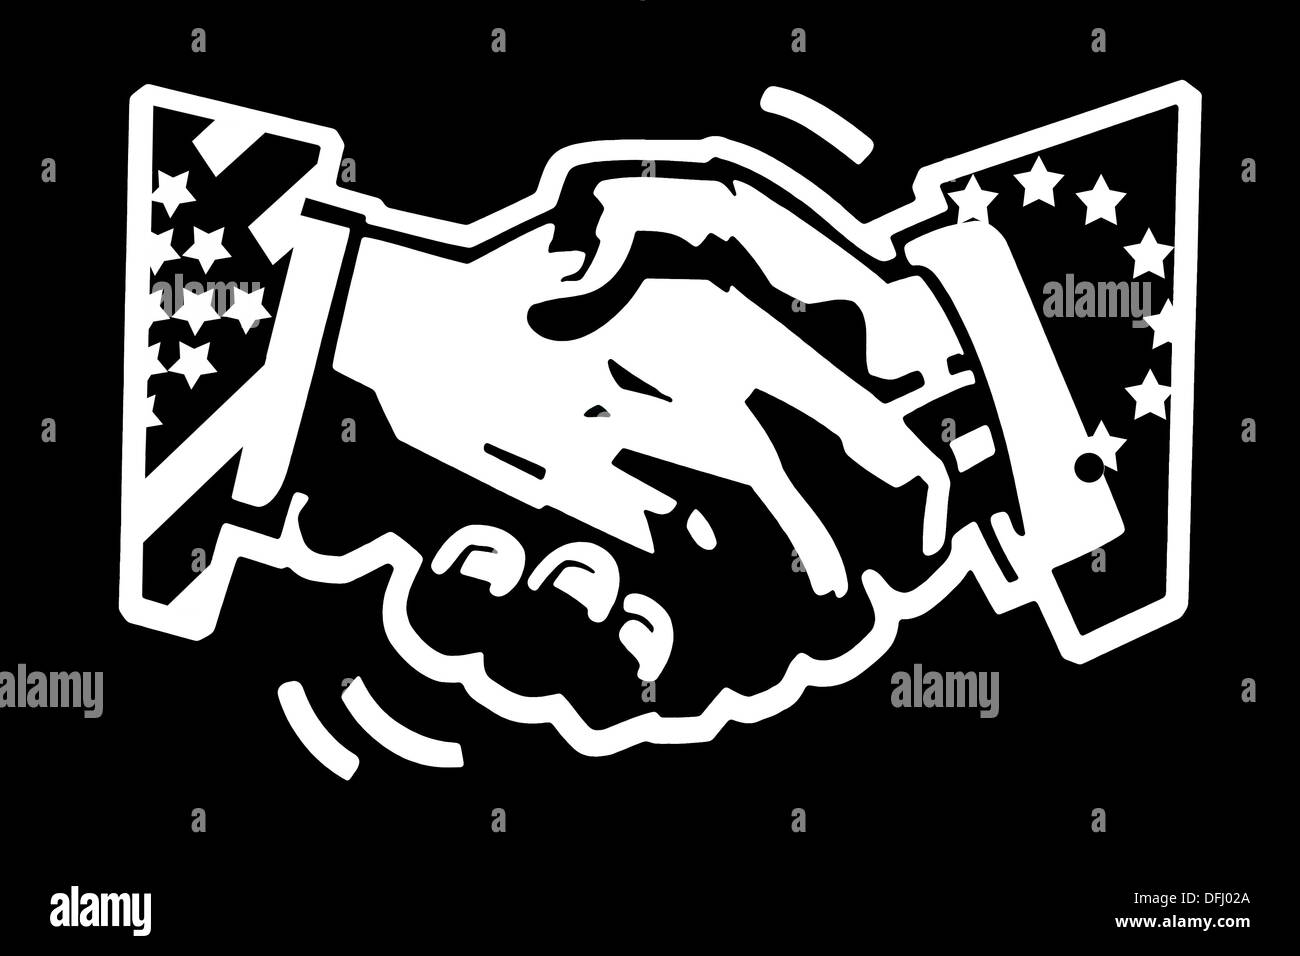 stencil drawing white on black painted wall of a handshake with usa and eu flags, trade relations concept - Stock Image